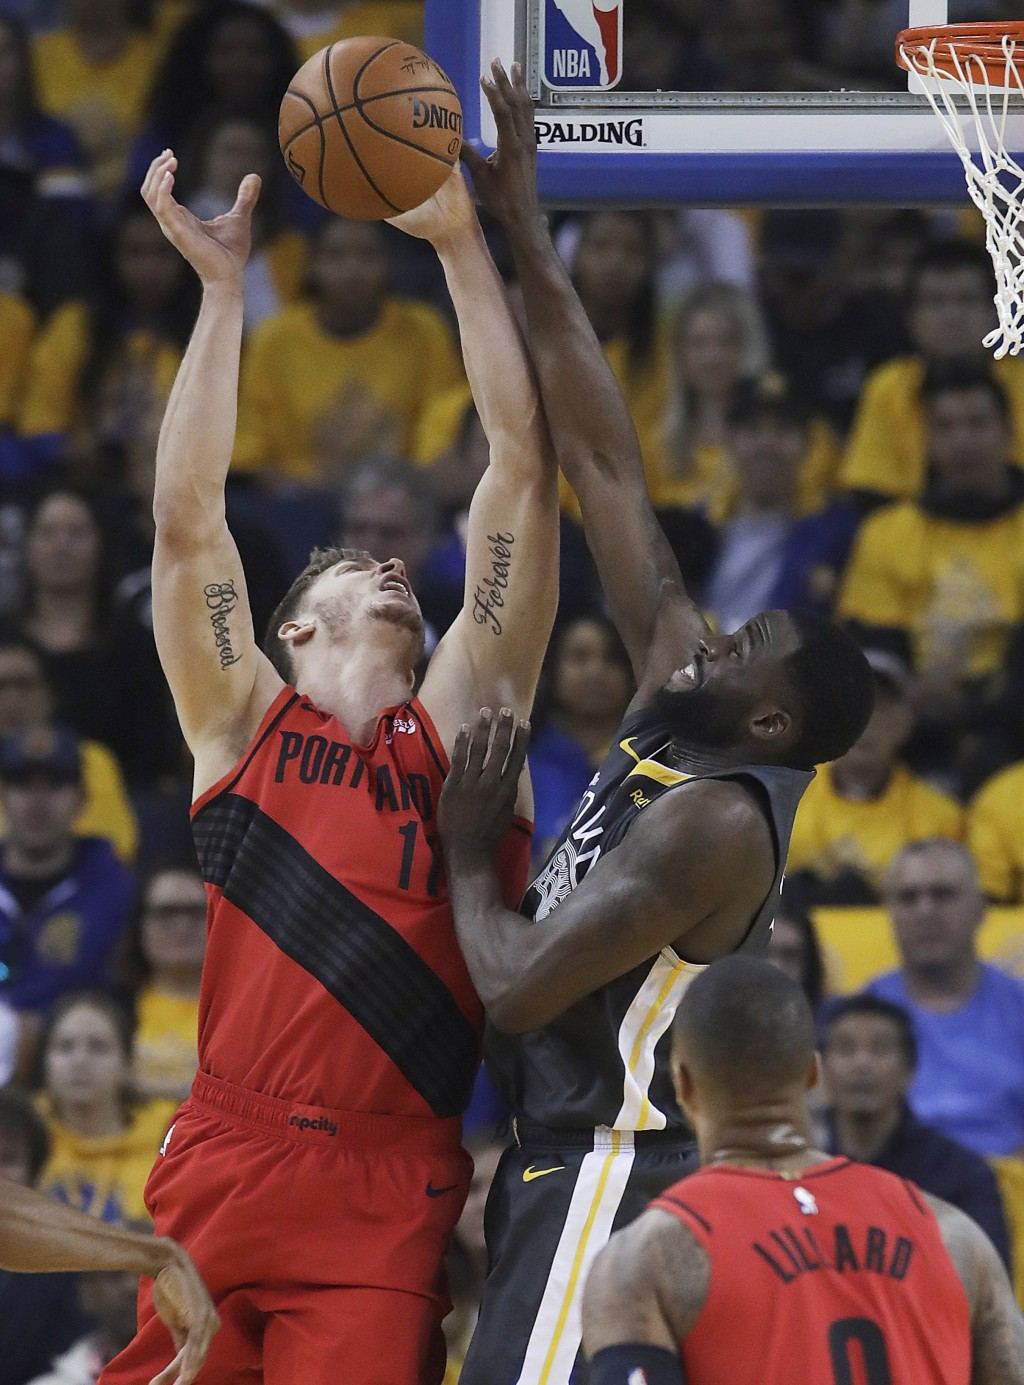 Golden State Warriors forward Draymond Green, top right, defends a shot by Portland Trail Blazers forward Meyers Leonard during the first half of Game